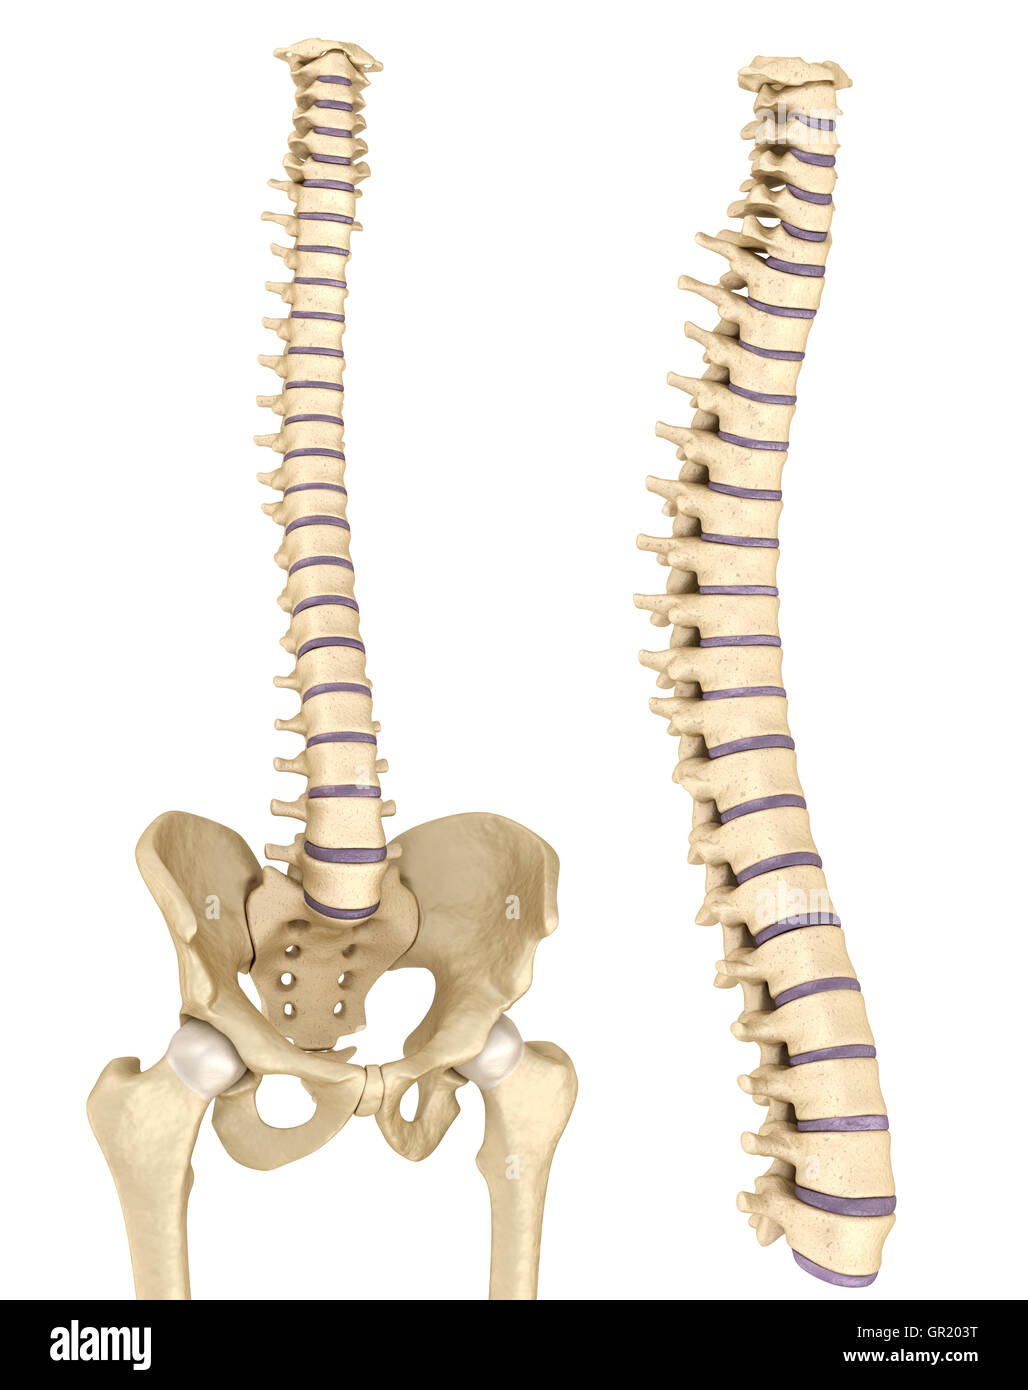 Spinal cord and pelvis Stock Photo: 117443308 - Alamy